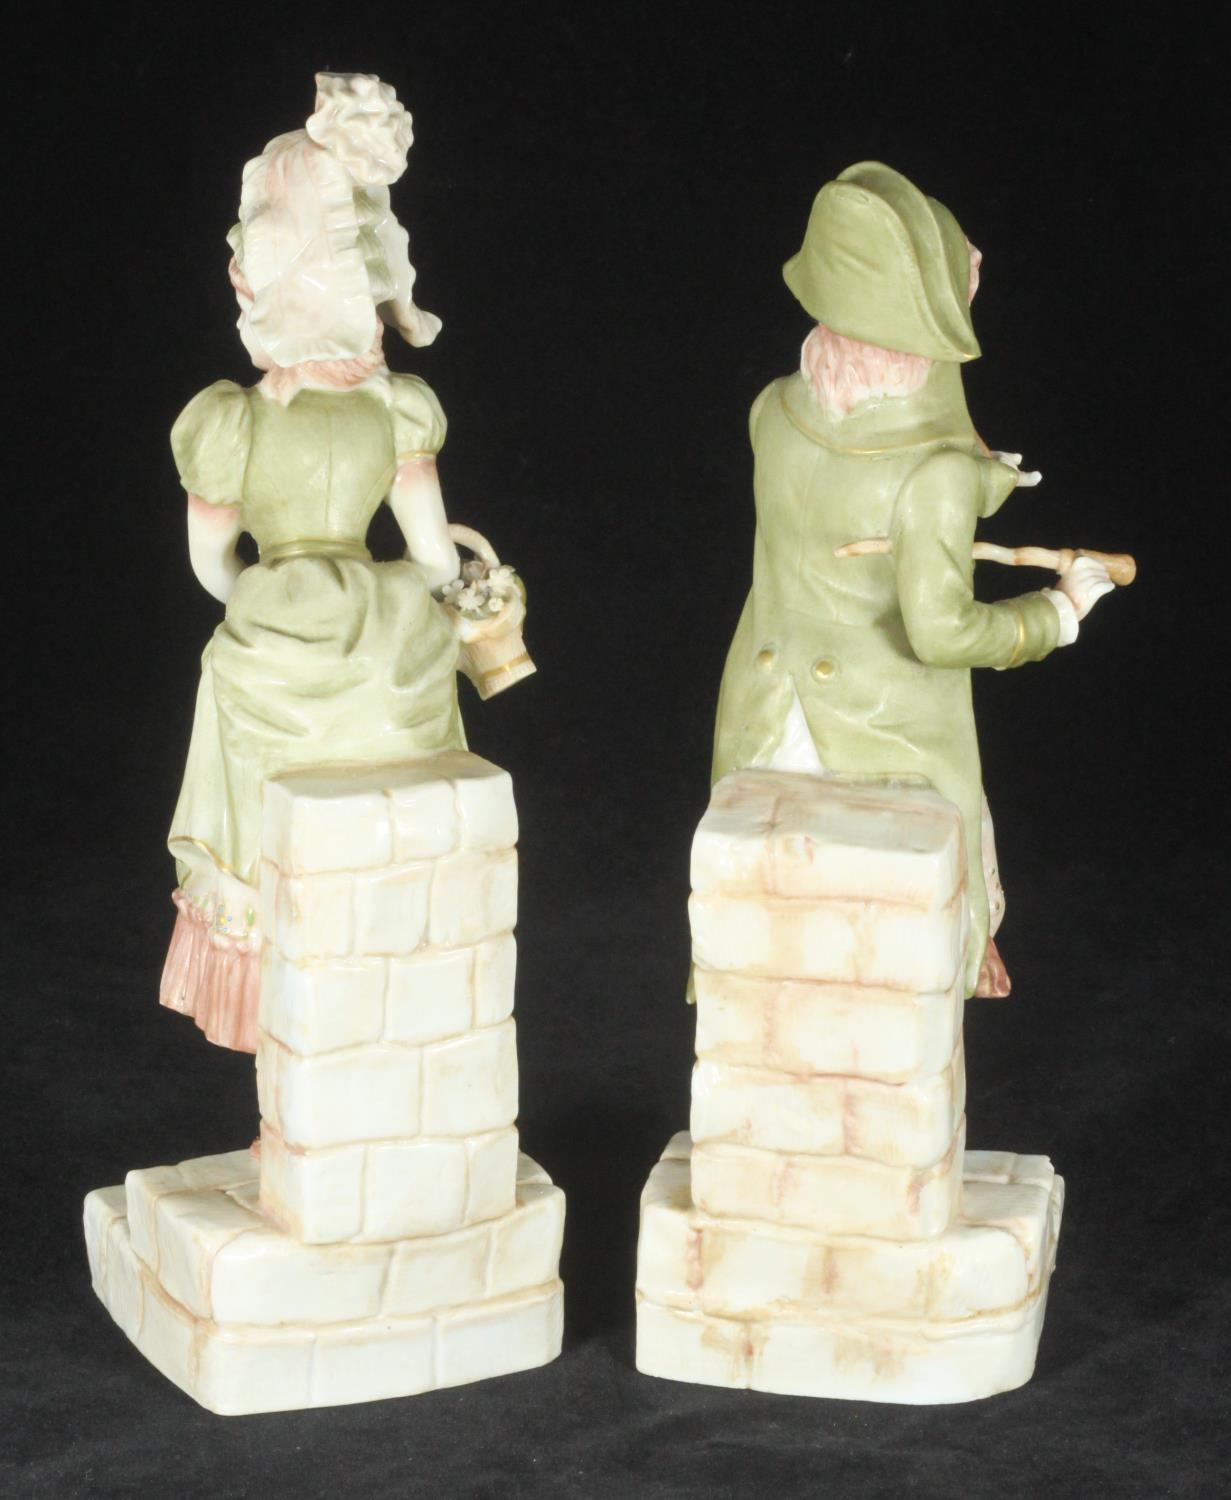 Lot 38 - A pair of Ernst Bohne and Sohne porcelain figures of a finely dressed gentleman, and a lady